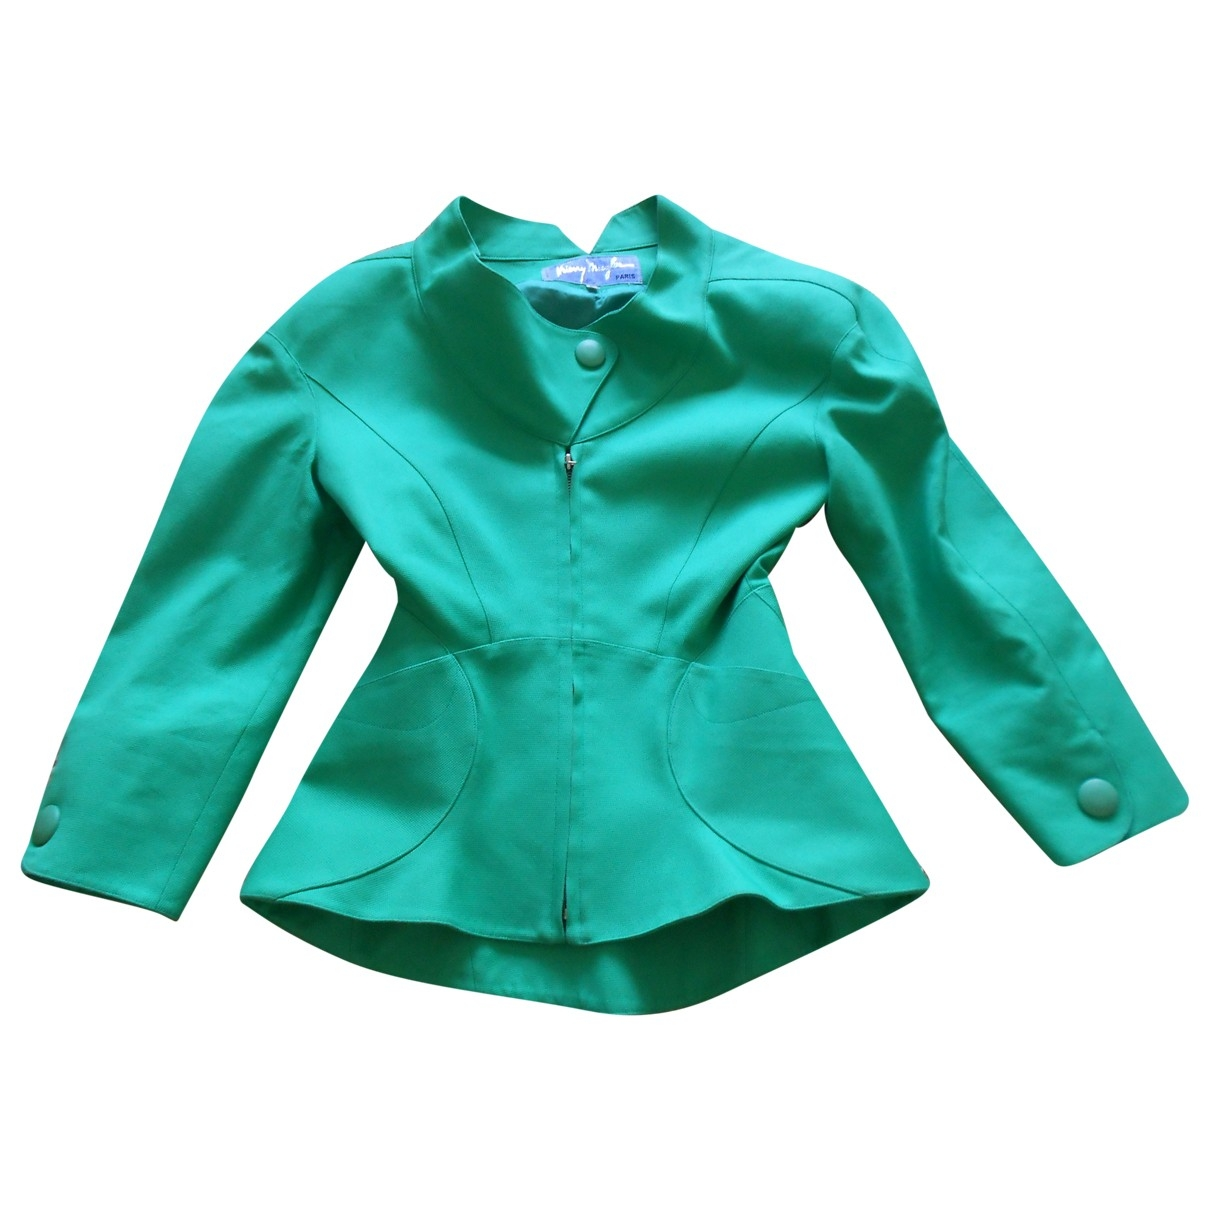 Thierry Mugler \N Green Cotton jacket for Women 38 FR